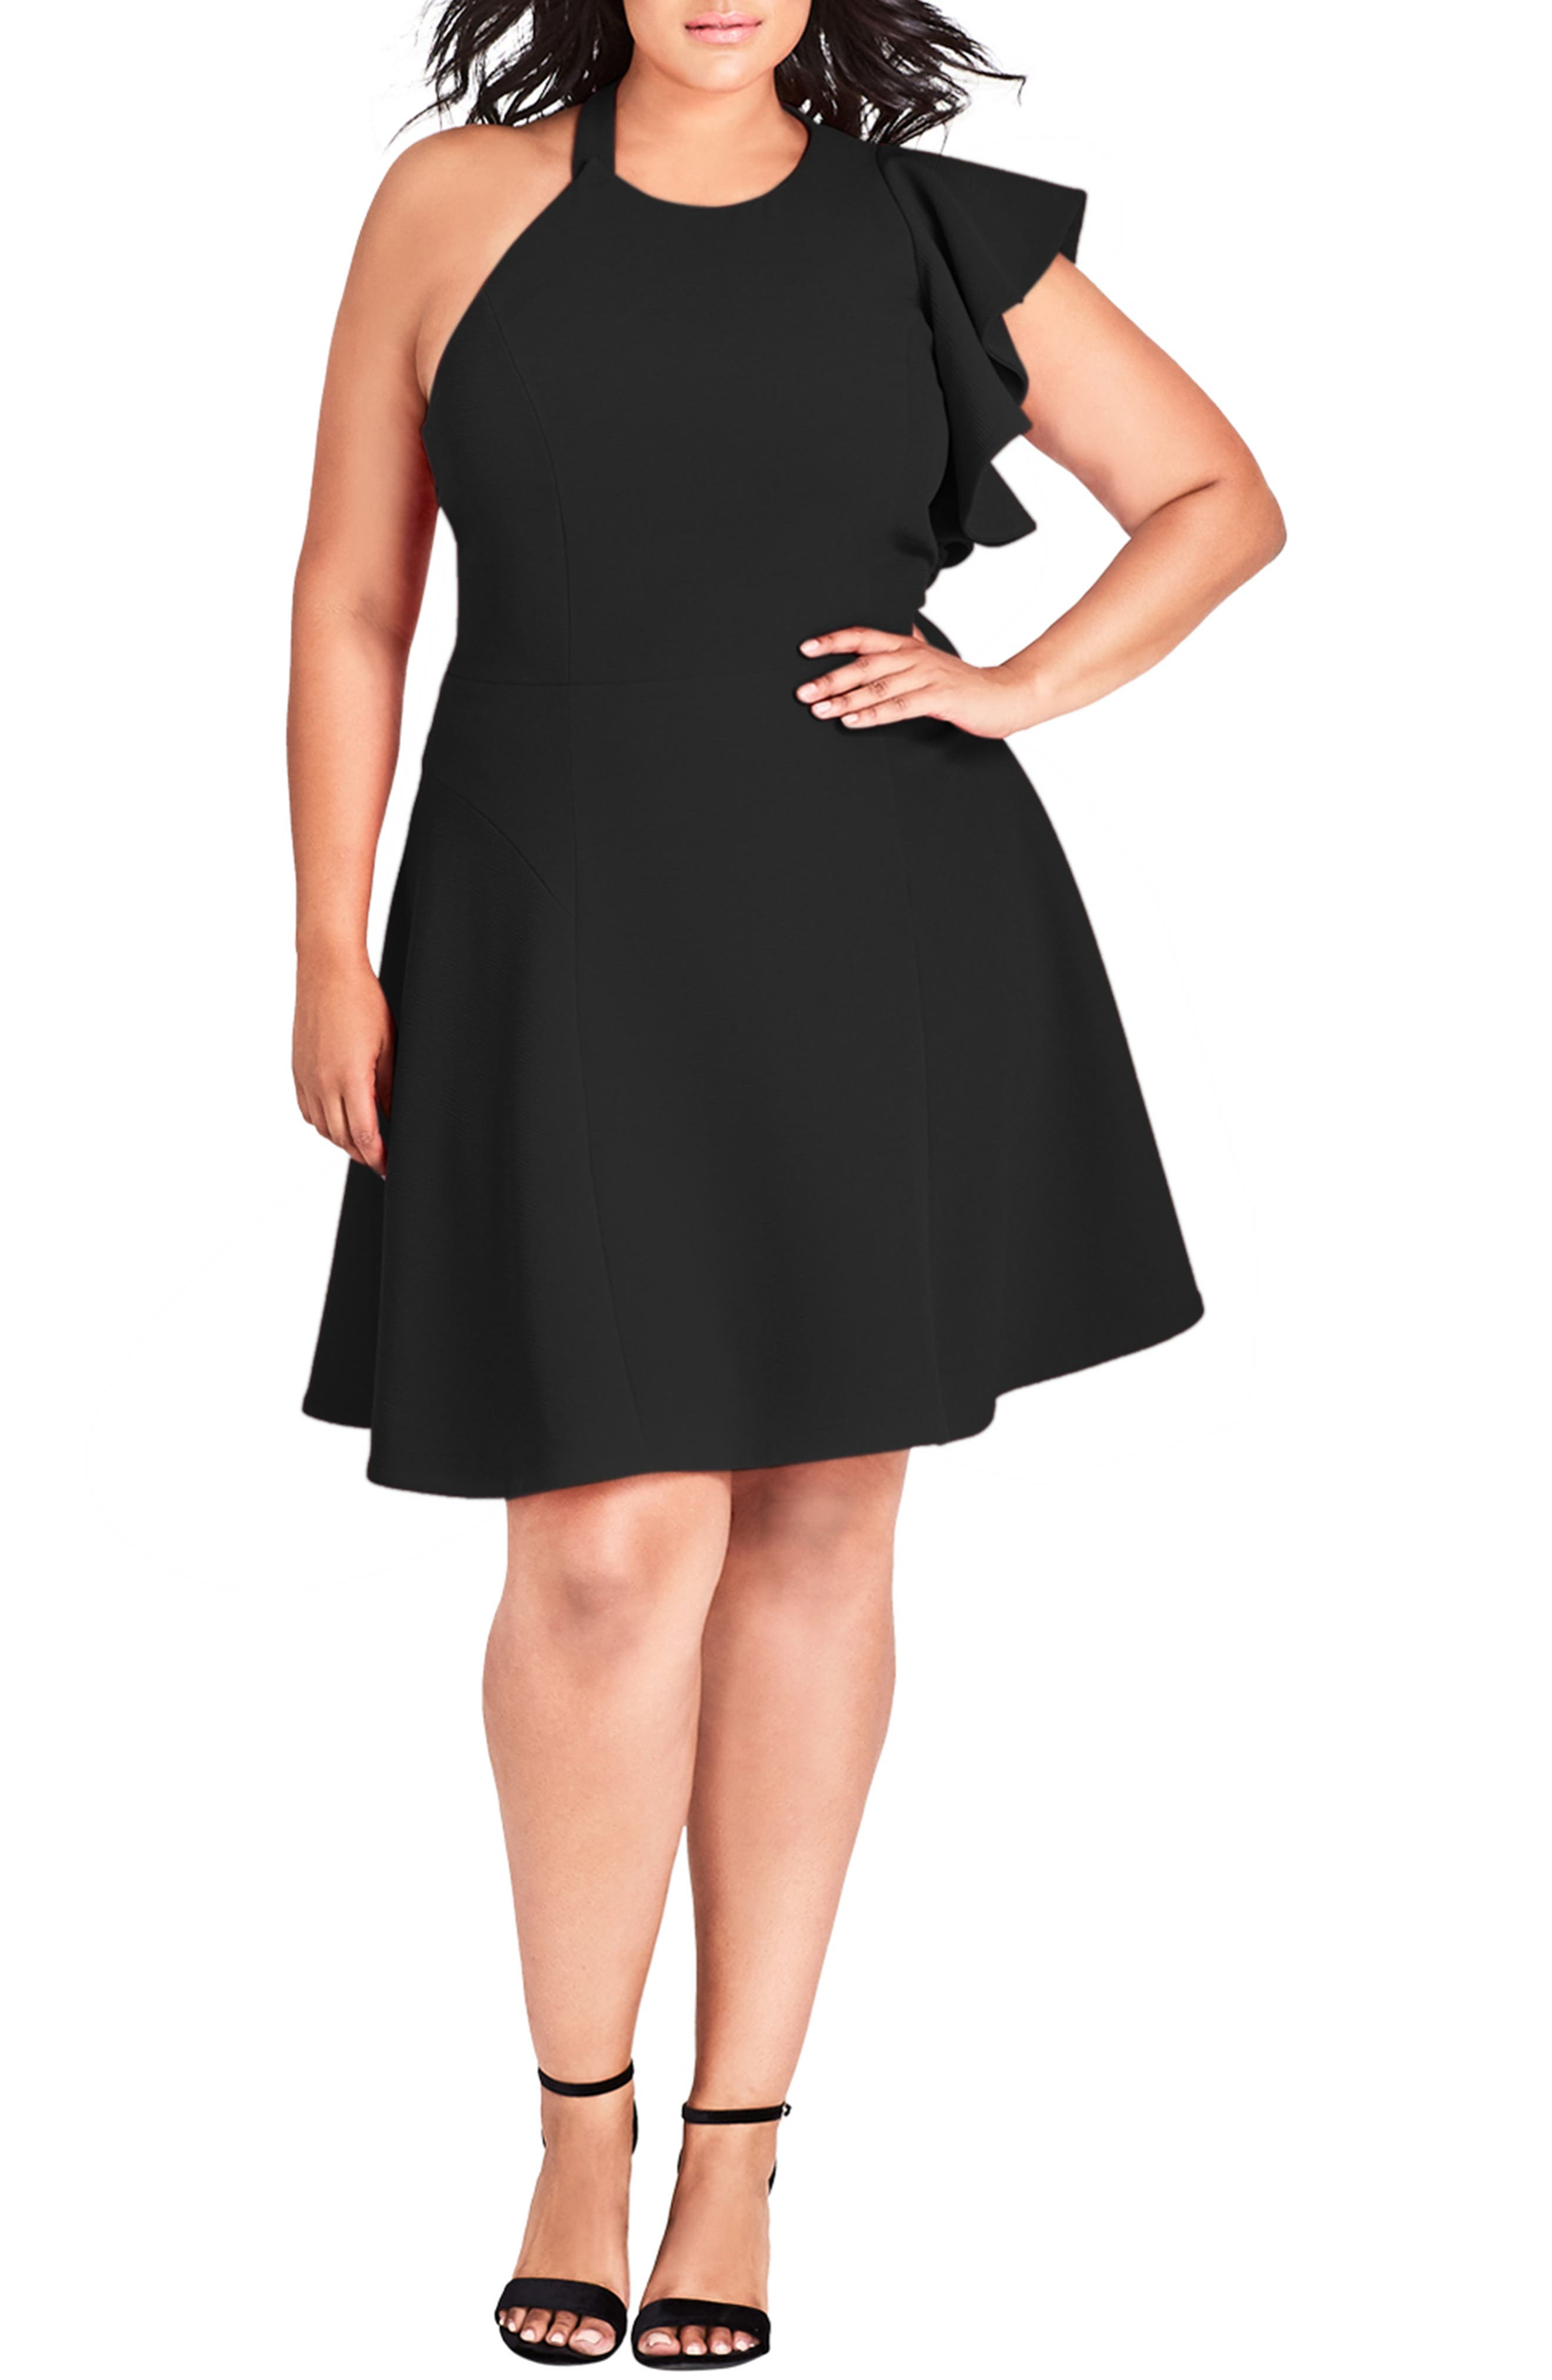 Plus Size City Chic Classy Star One Shoulder Fit & Flare Dress, Black